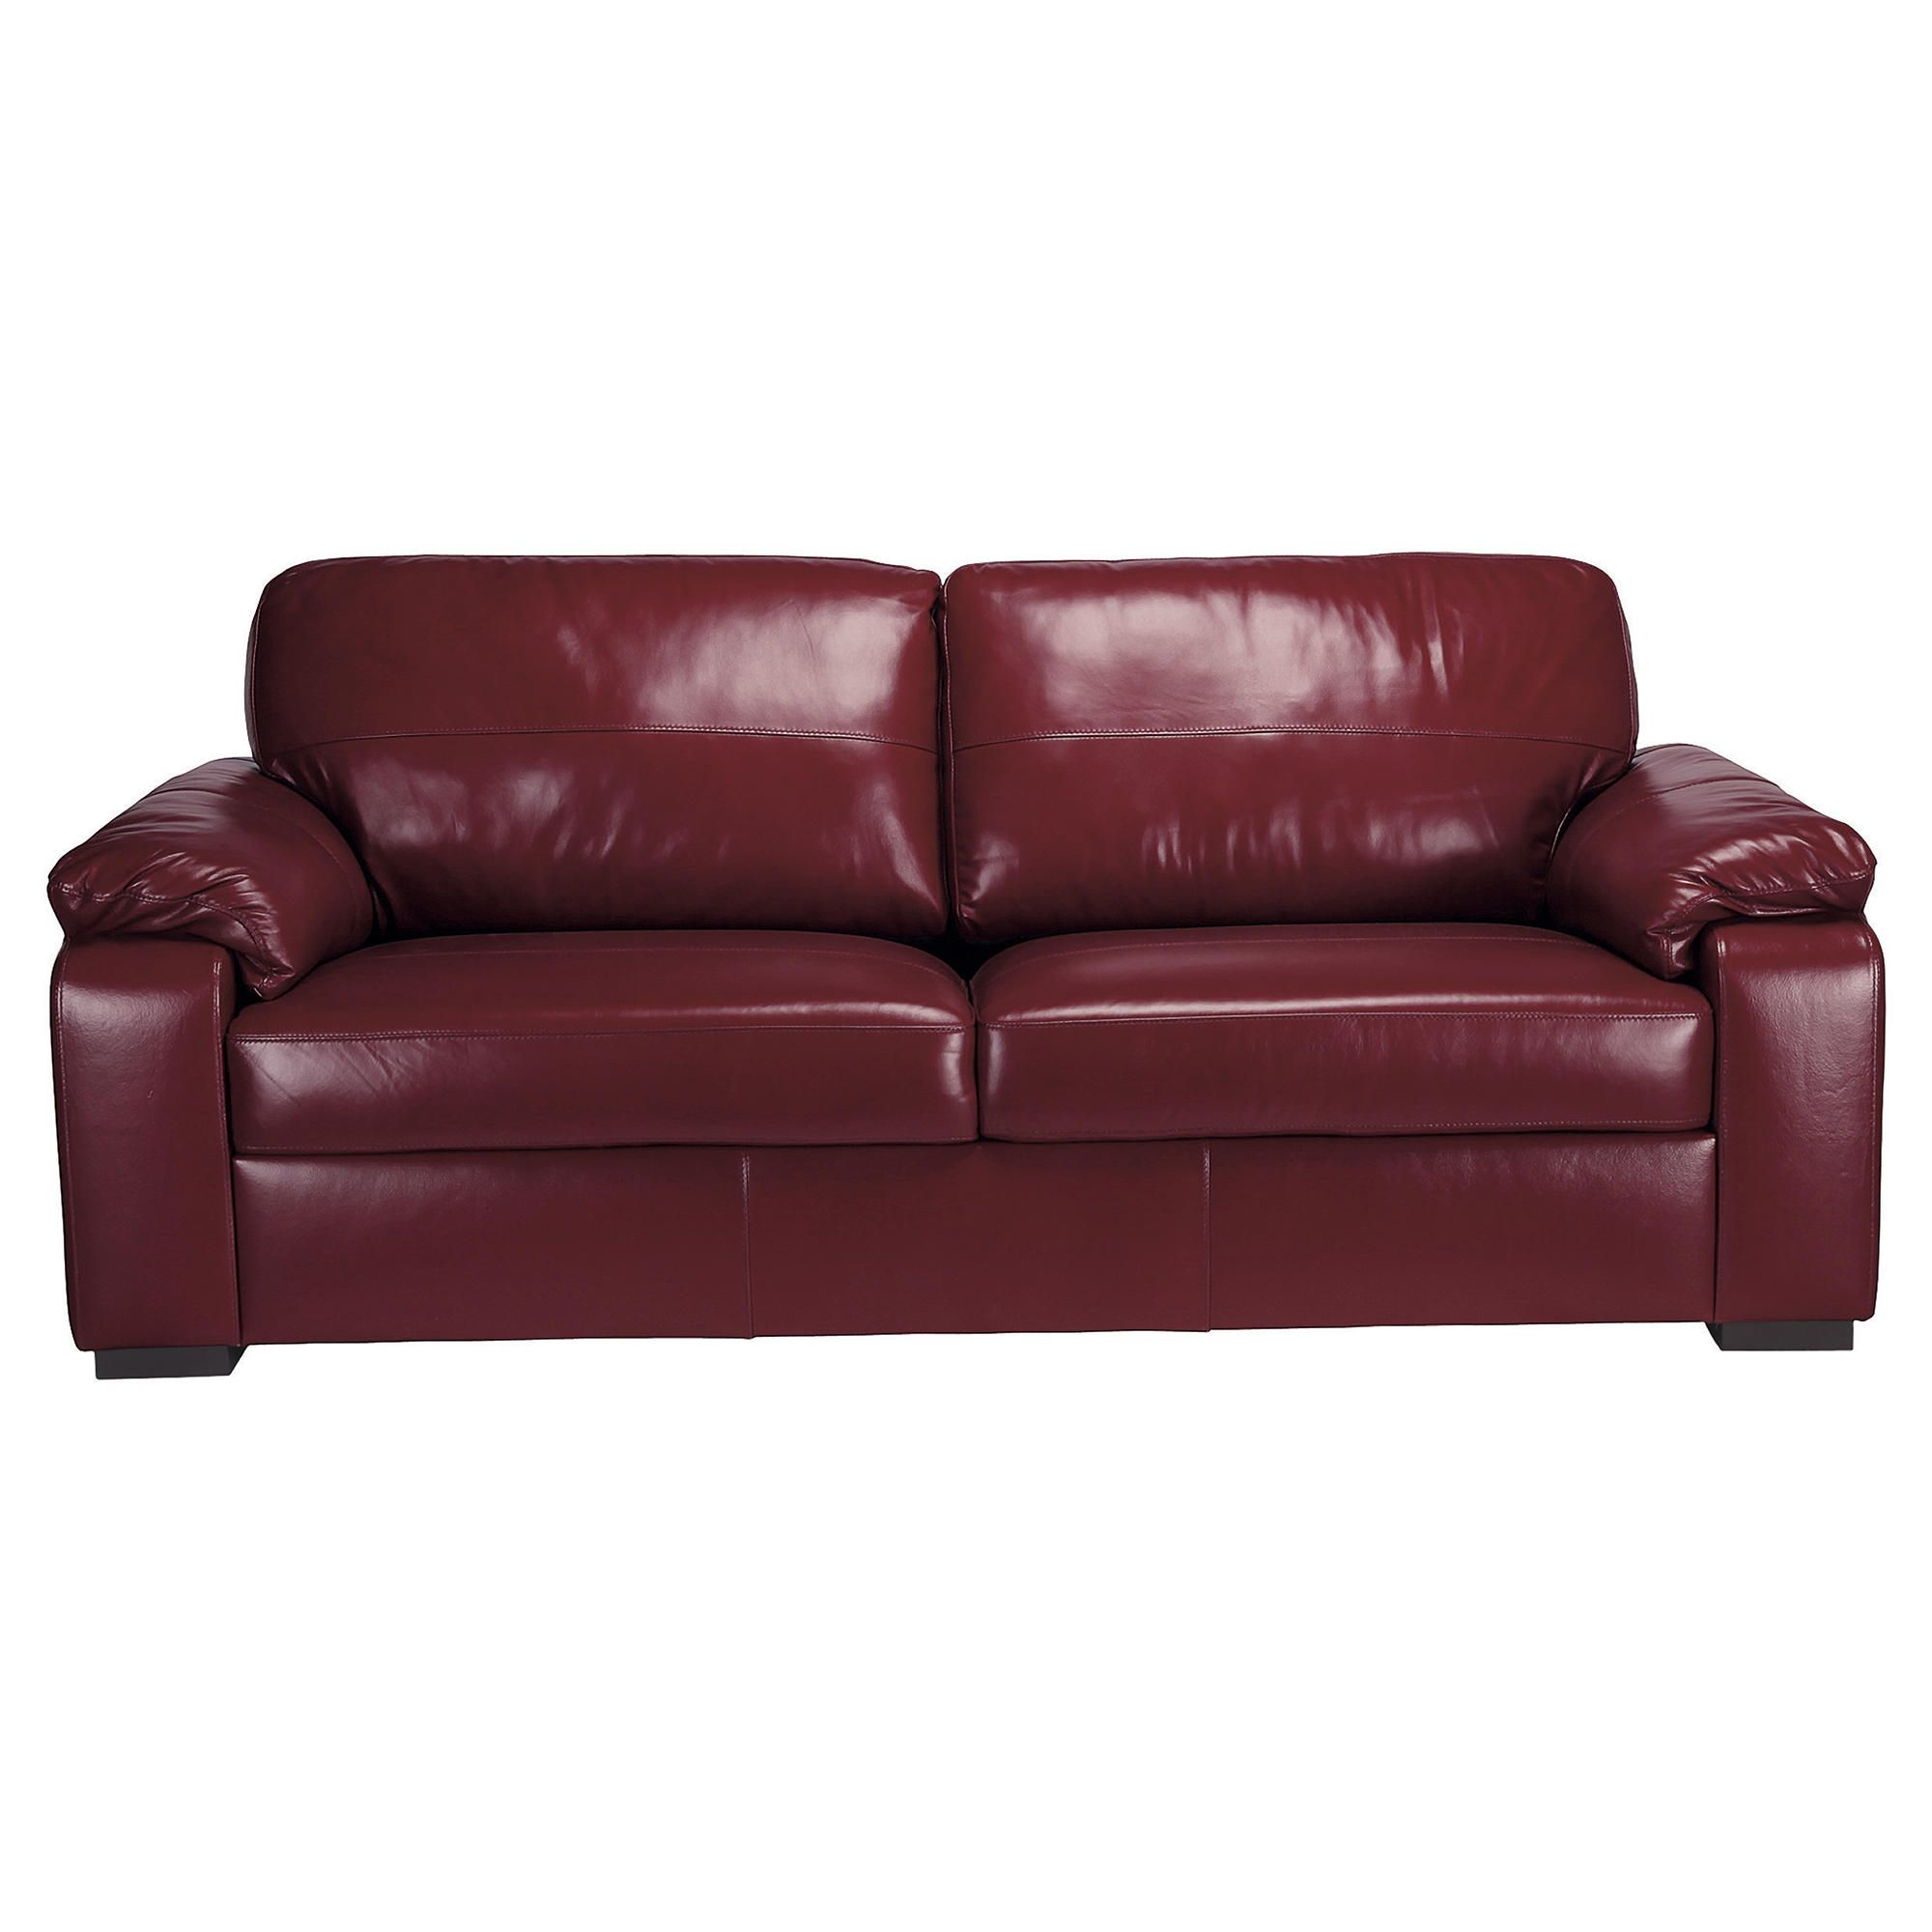 Ashmore Large Leather Sofa, Red at Tesco Direct